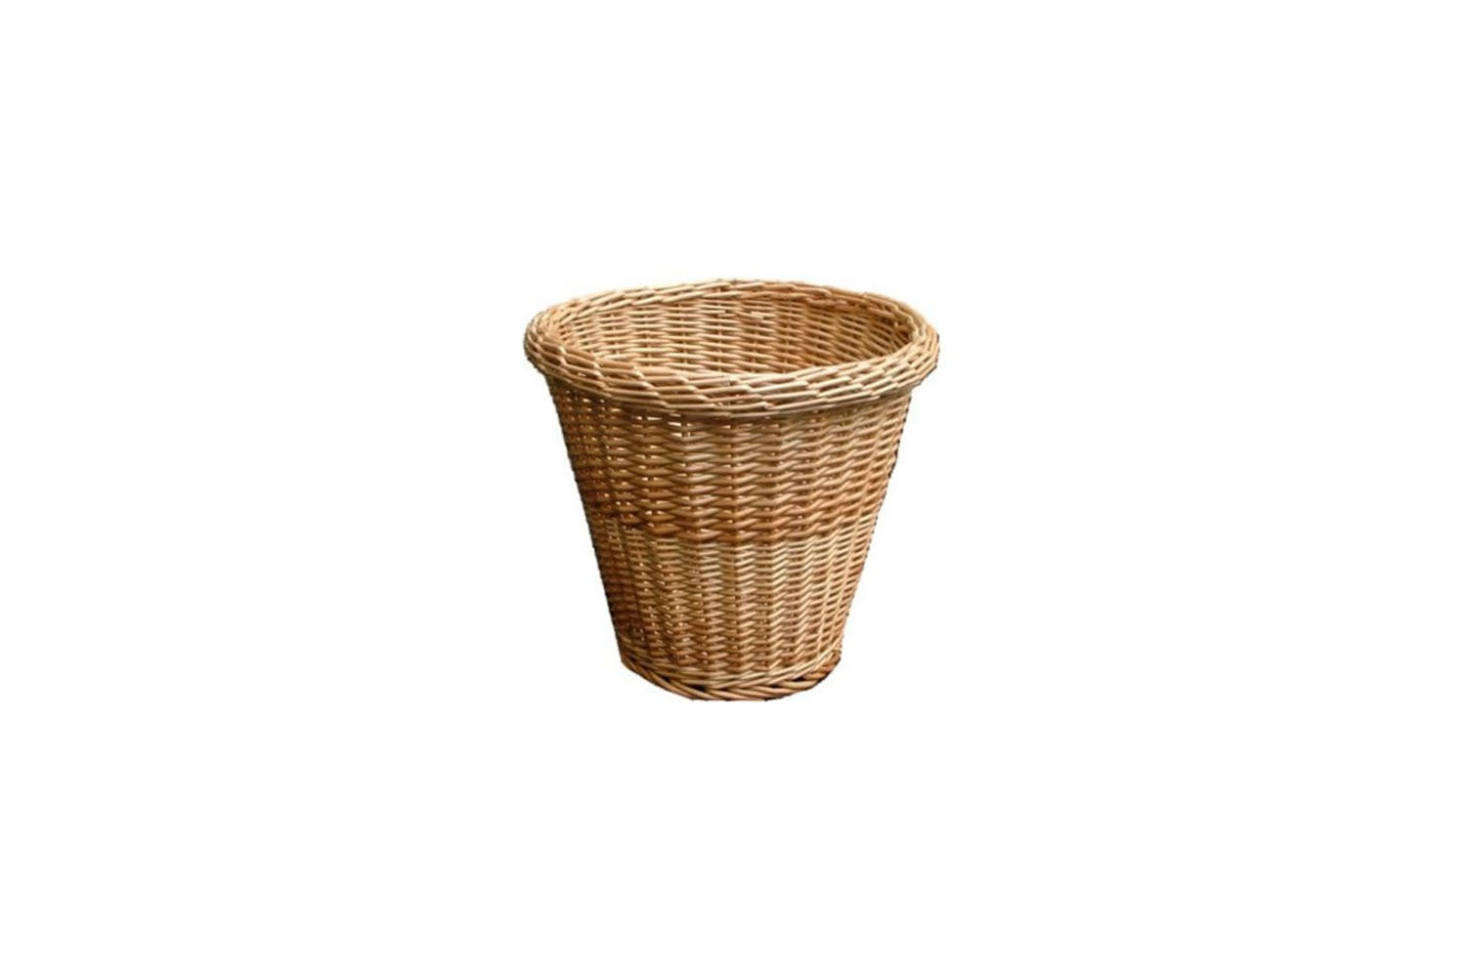 A simple Round Wicker Waste Paper Bin is £12 at the Basket Company.